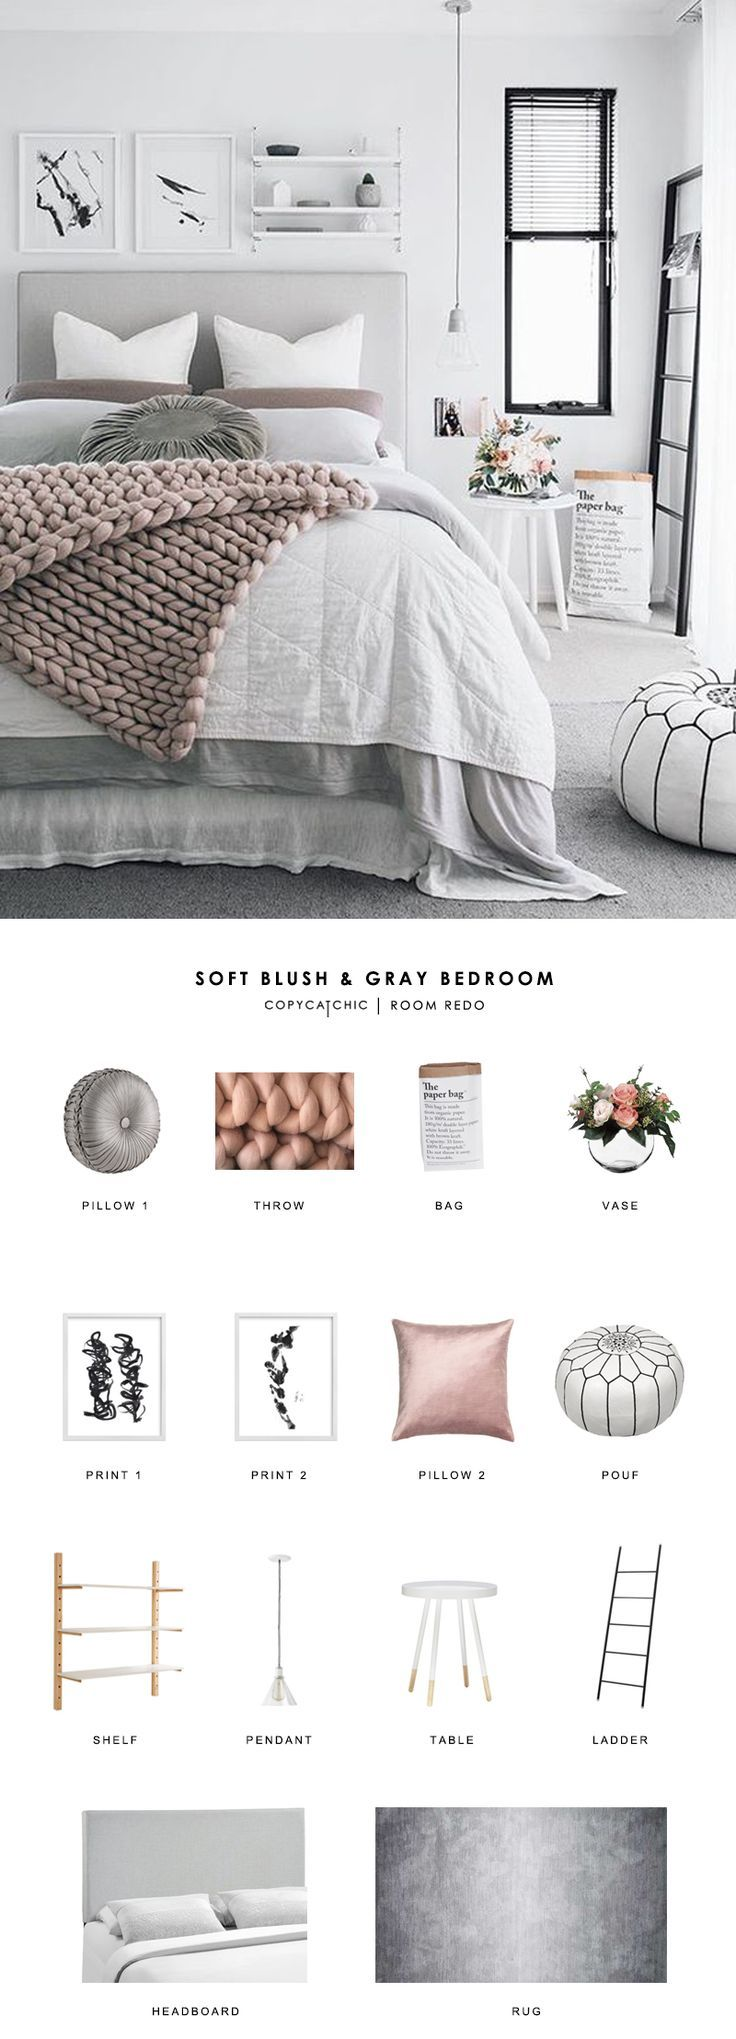 Copy Cat Chic Room Redo | Soft Blush and Gray Bedroom | Copy Cat Chic | Bloglovin' #graybedroom